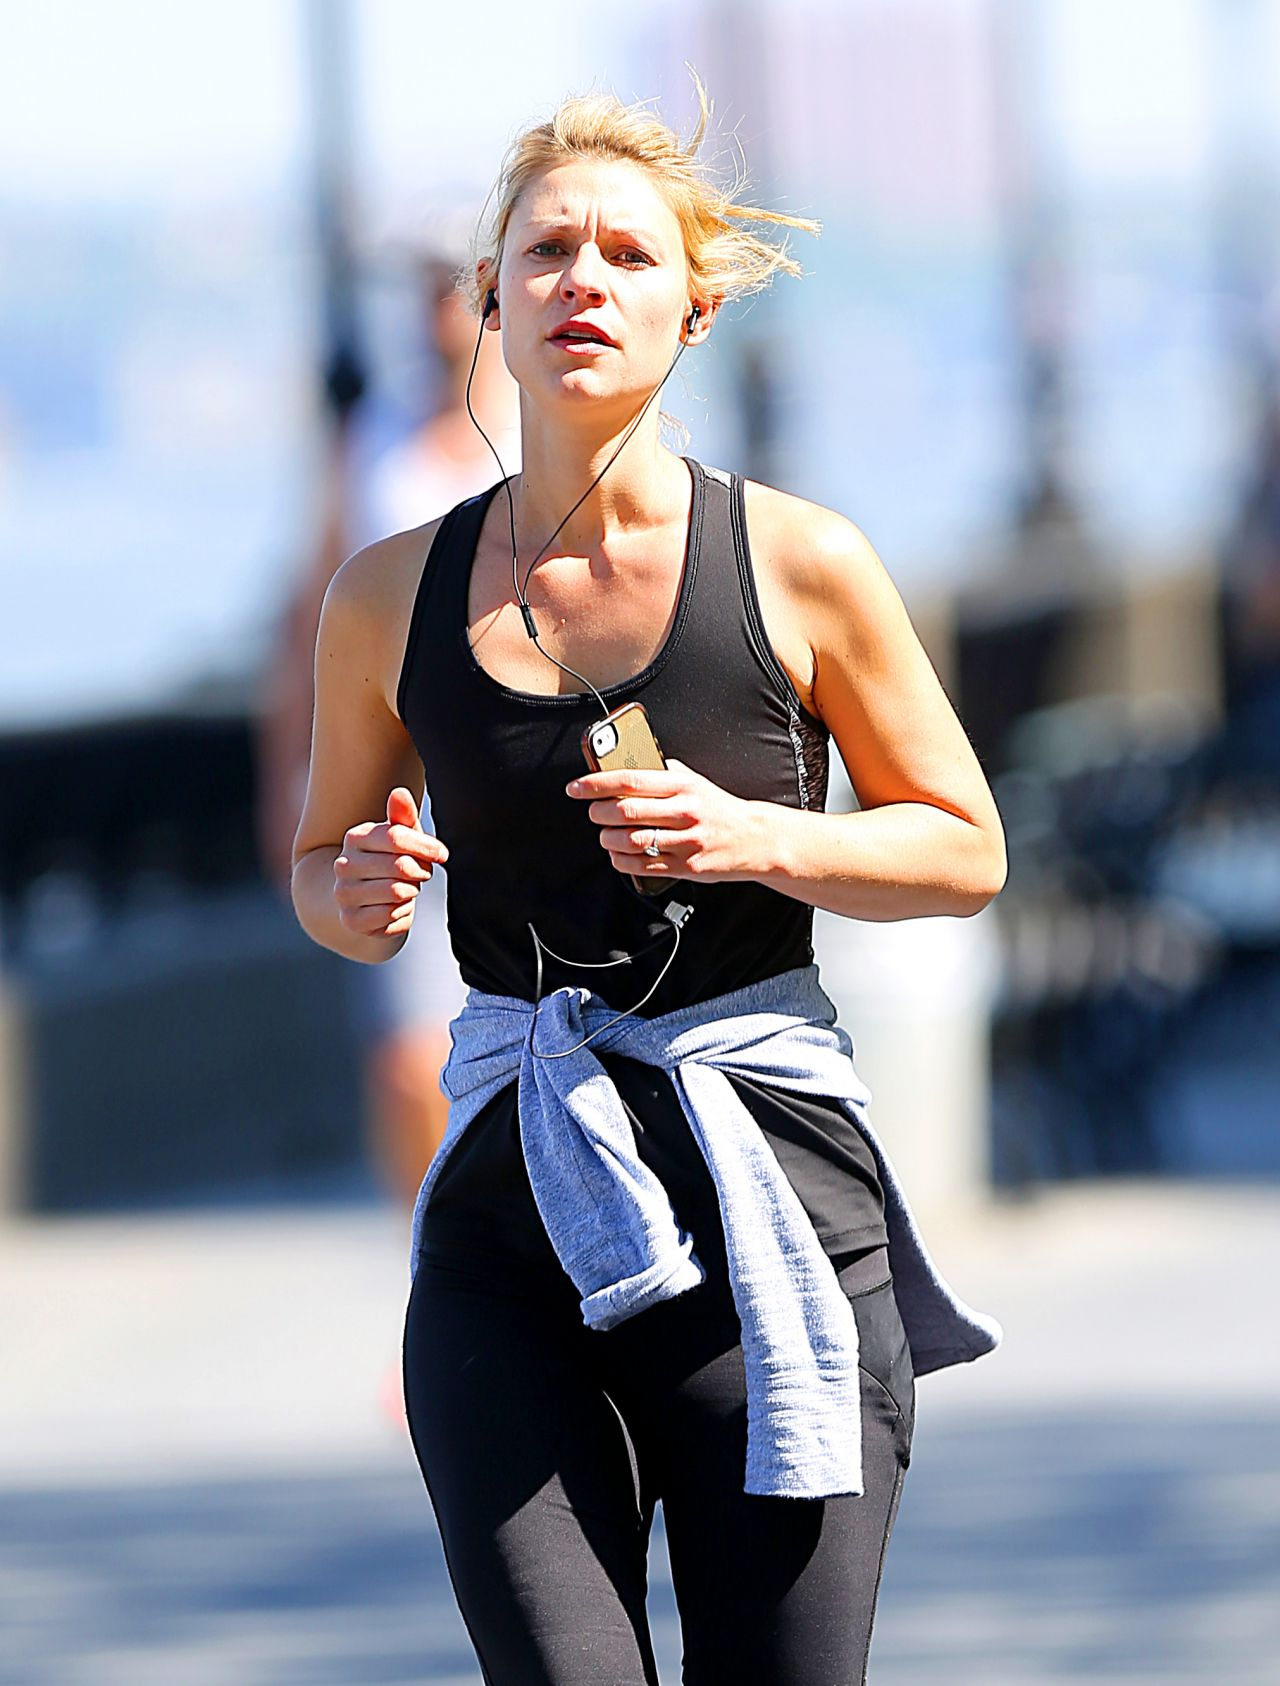 Claire Danes out Jogging in New York City - Alongside the Hudson River